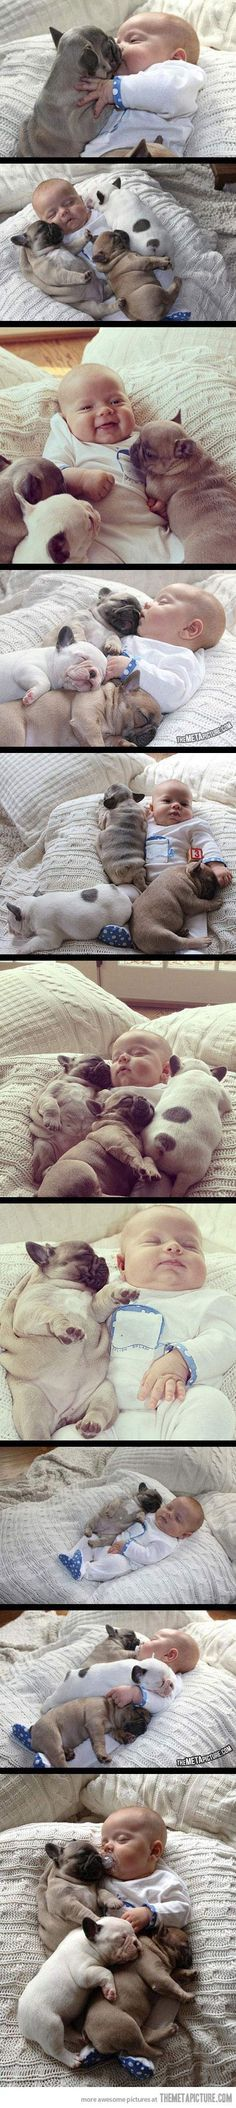 puppies and babies...my two favorite things!